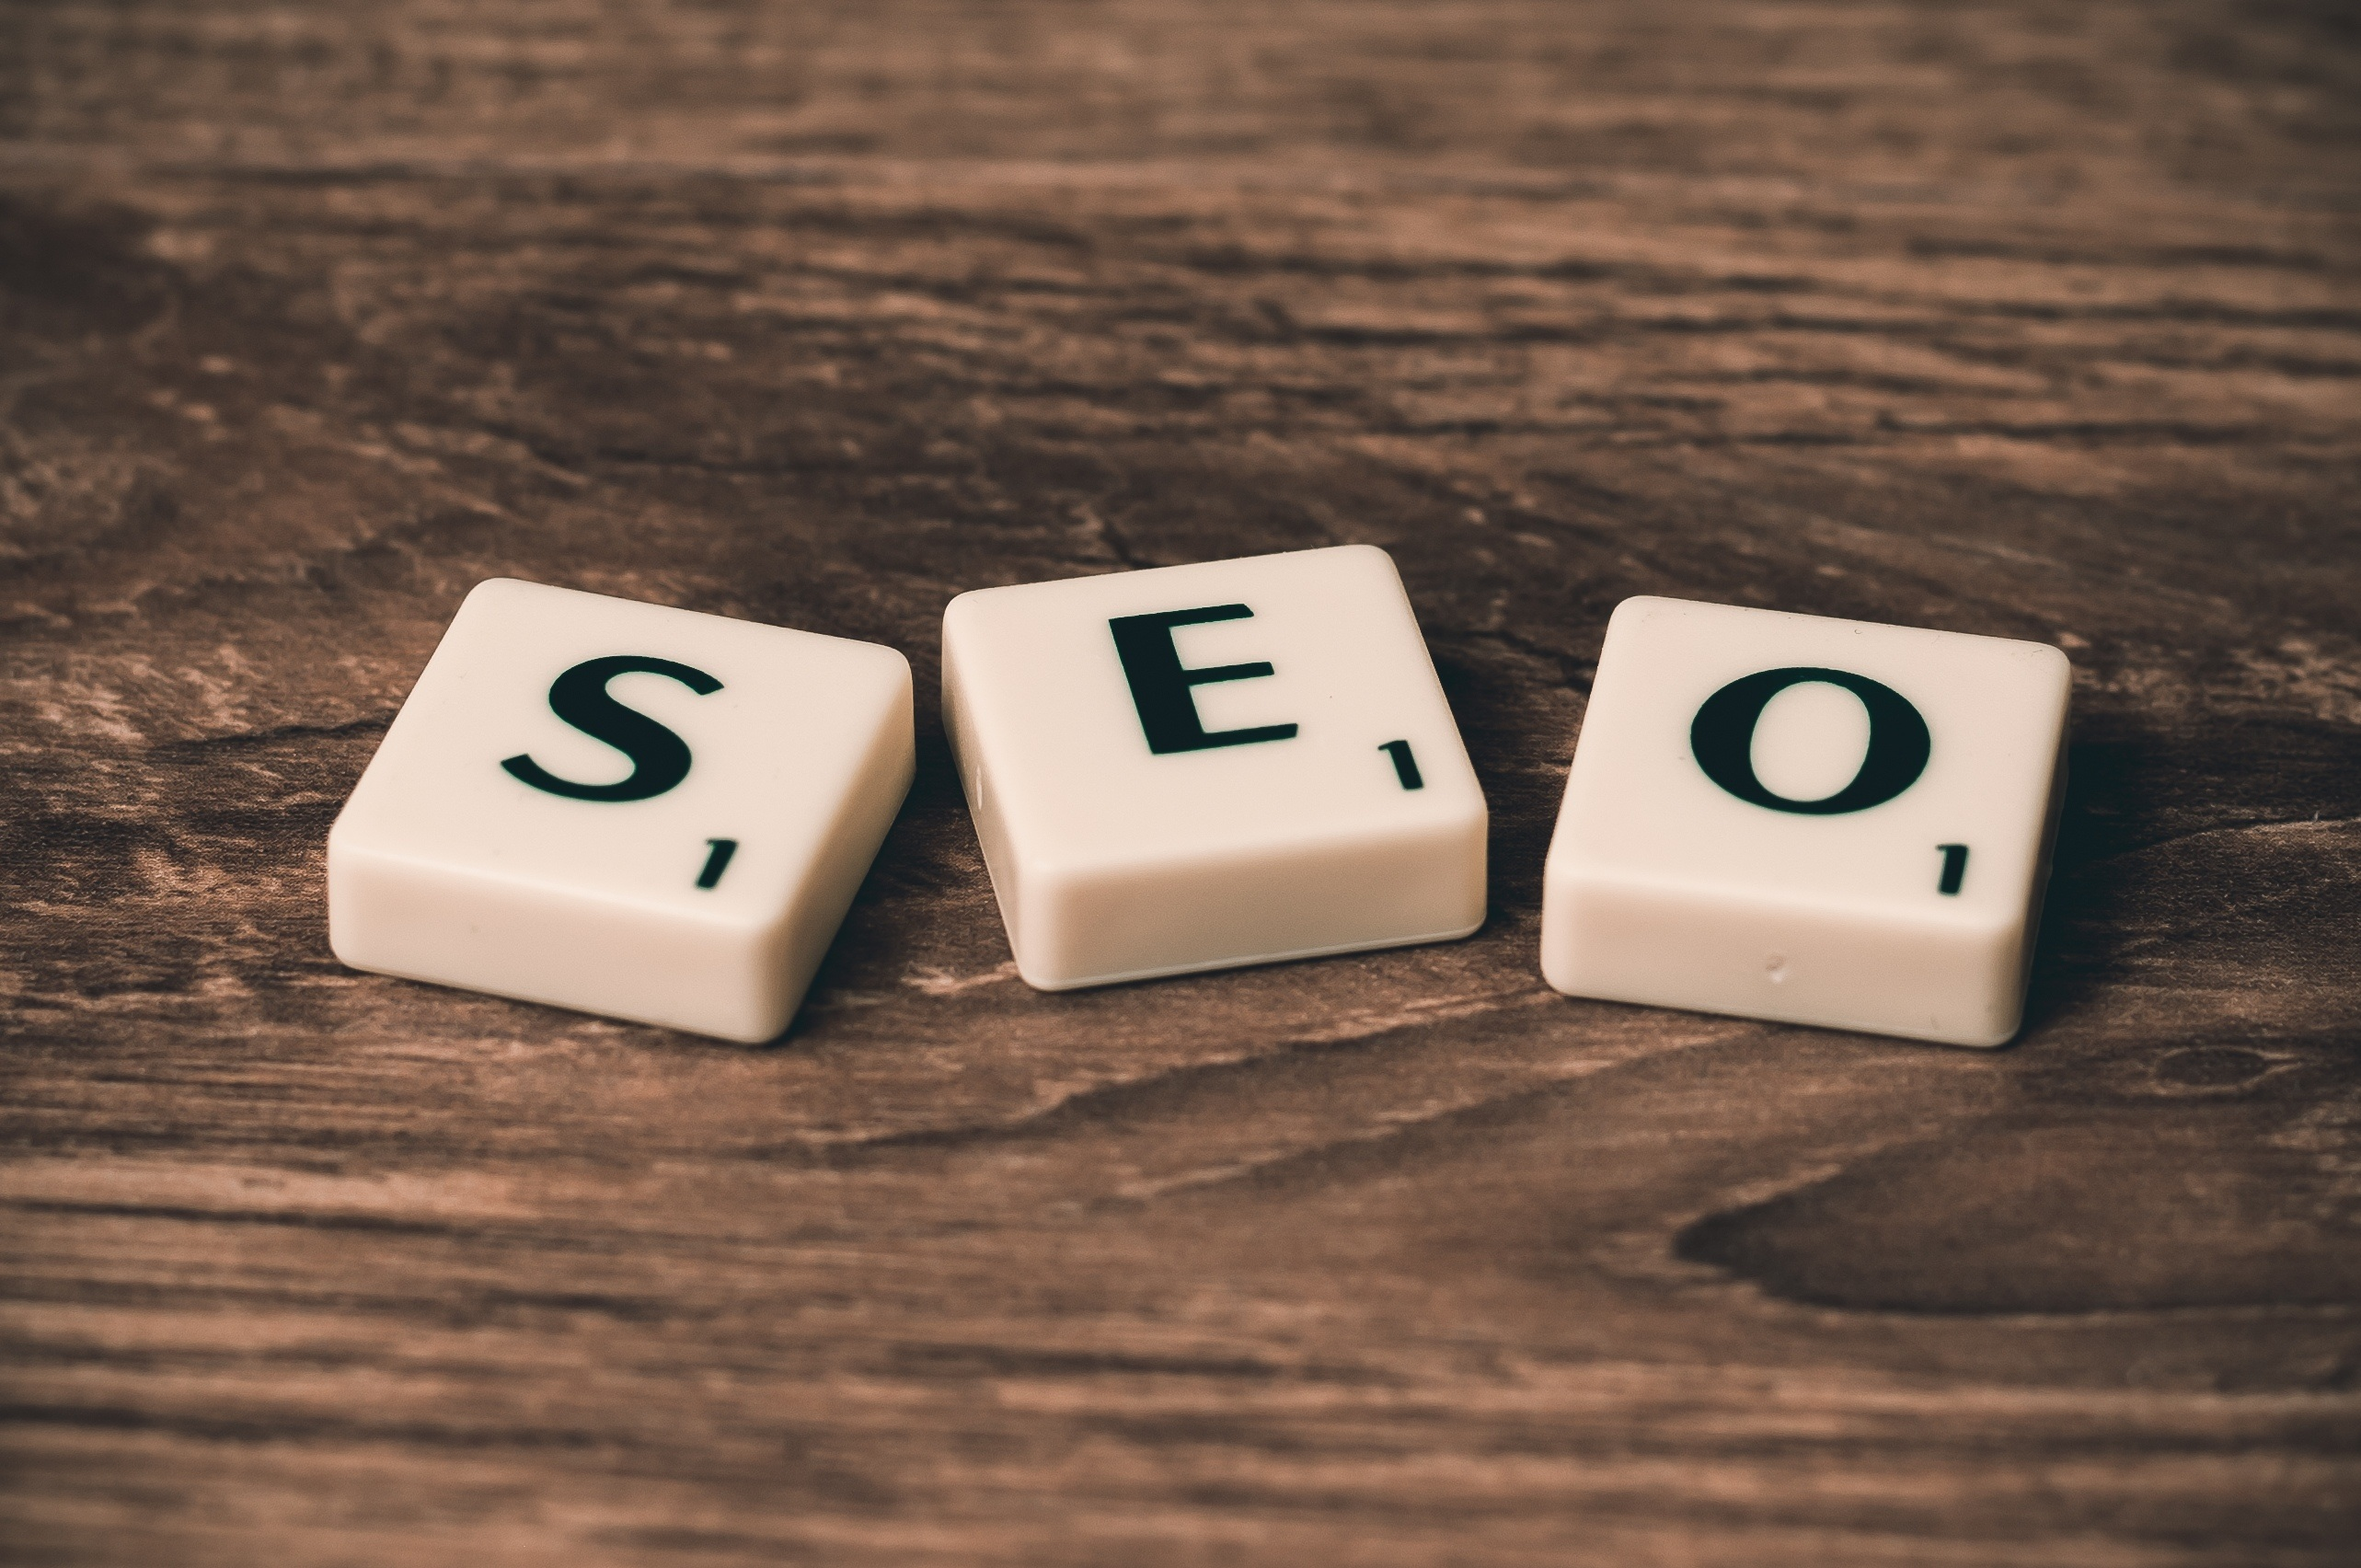 SEO for small business - S E O letter blocks